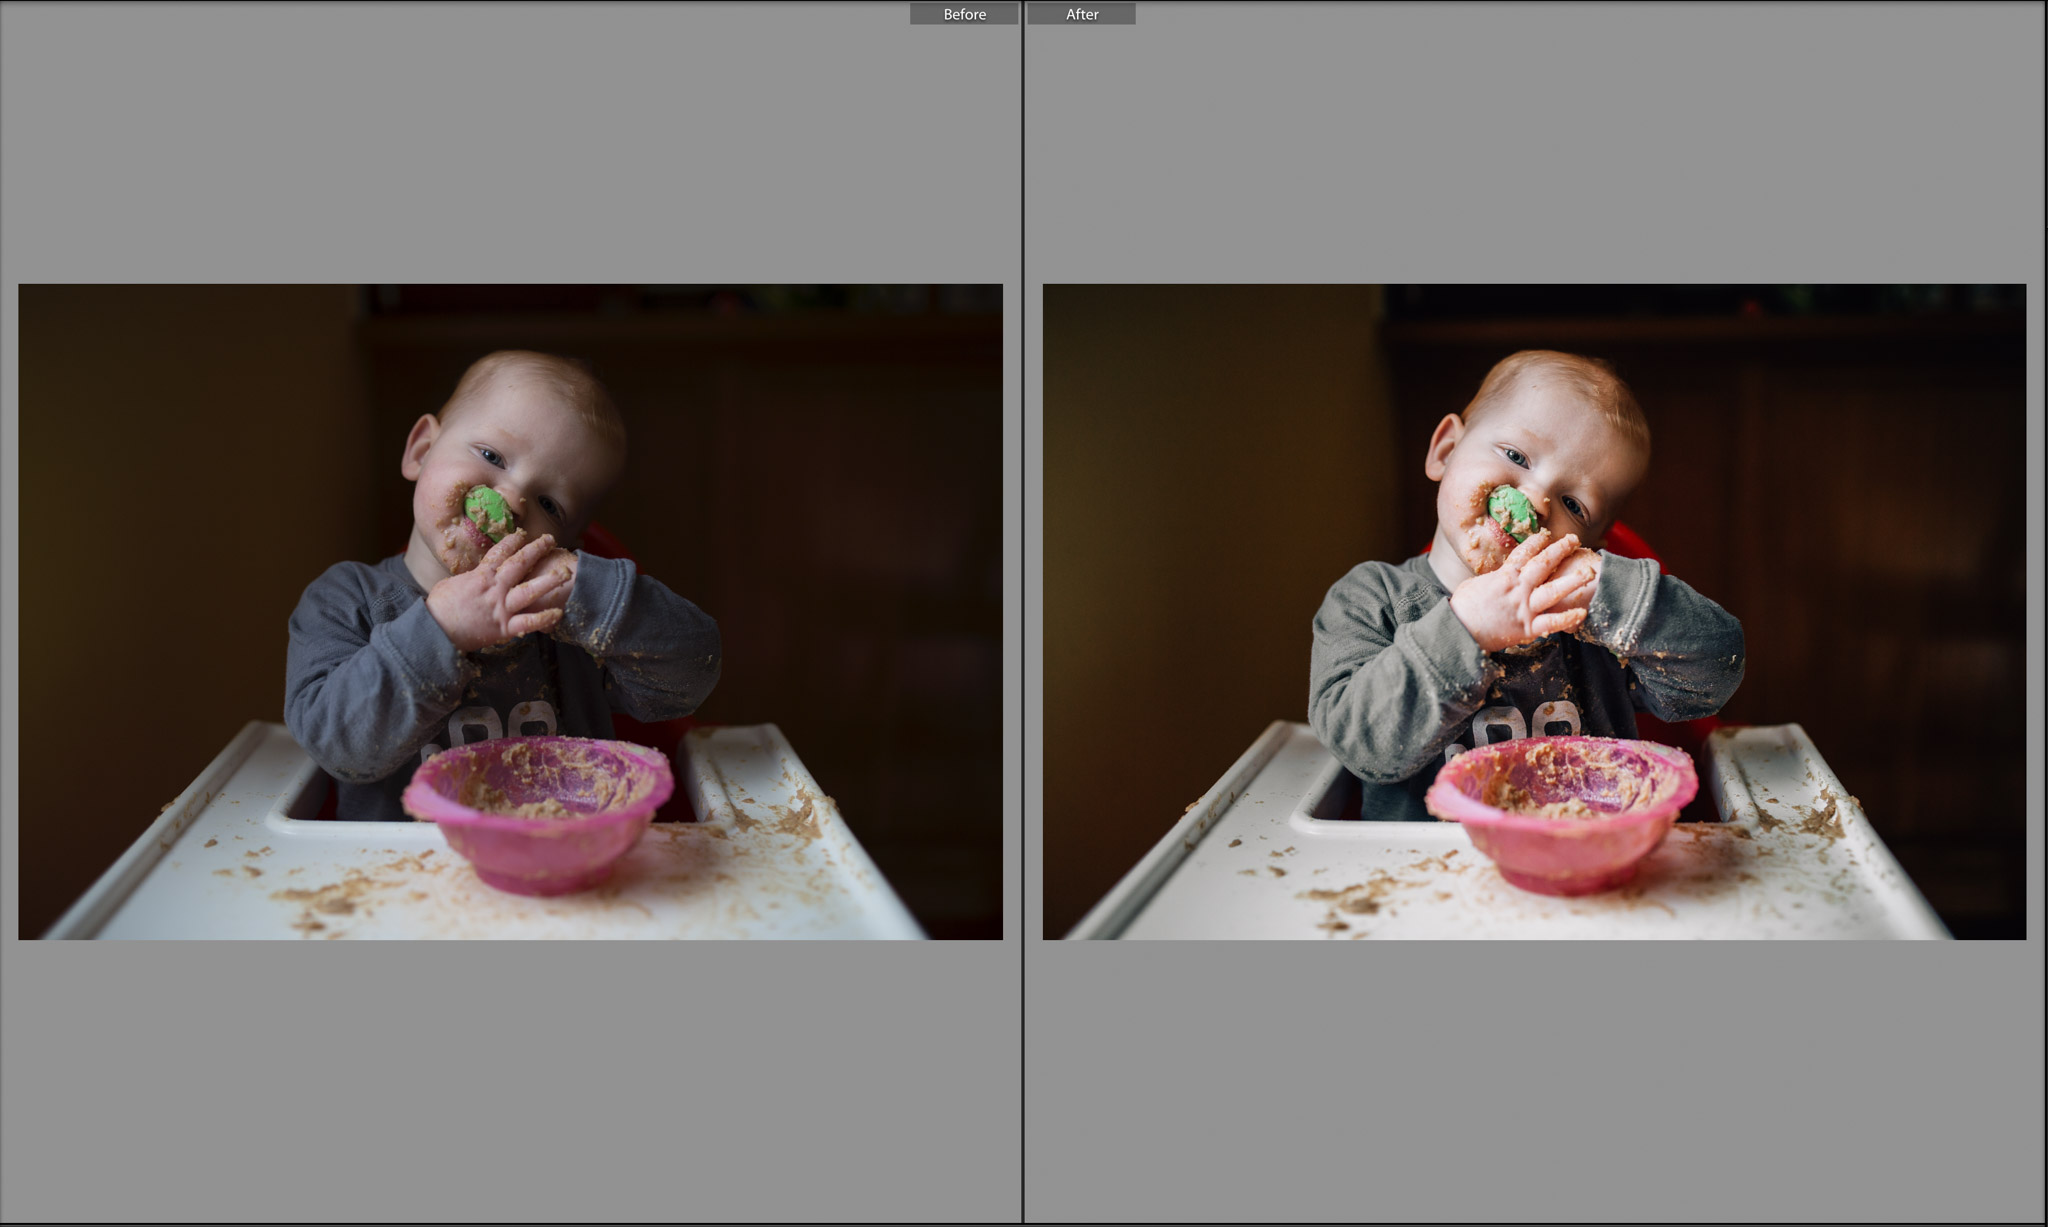 before and after little boy eating breakfast.jpg